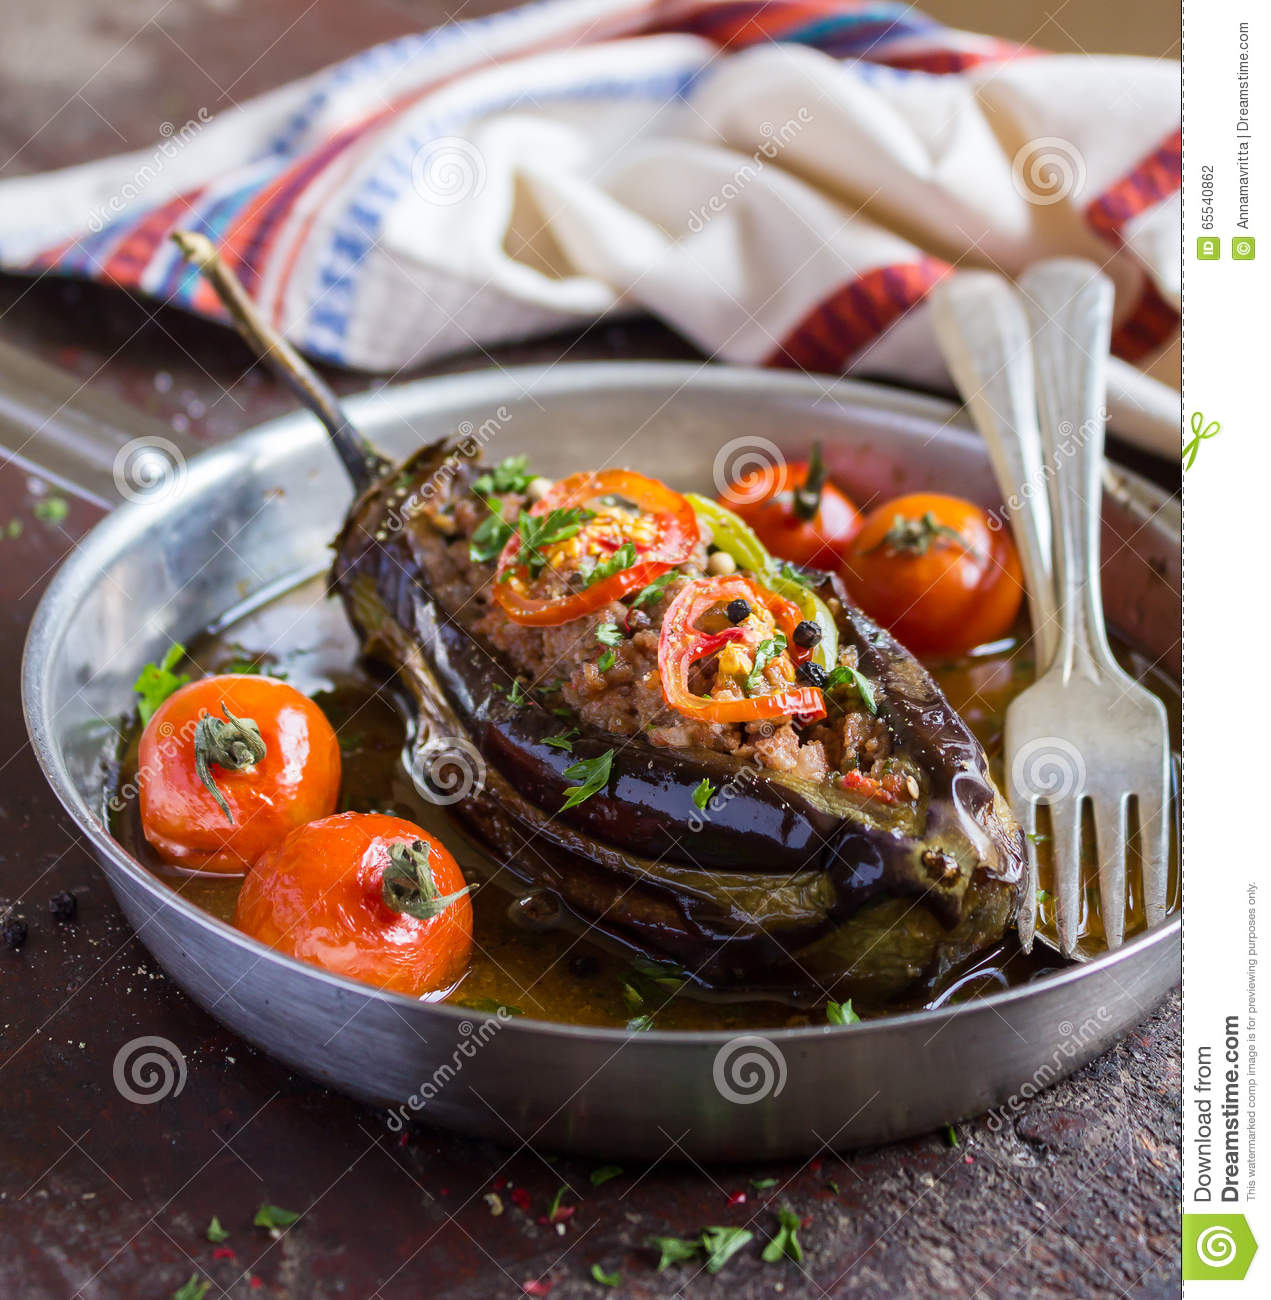 Aubergine Cuisine Of Stuffed Eggplant Or Aubergine With Minced Meat Stock Photo